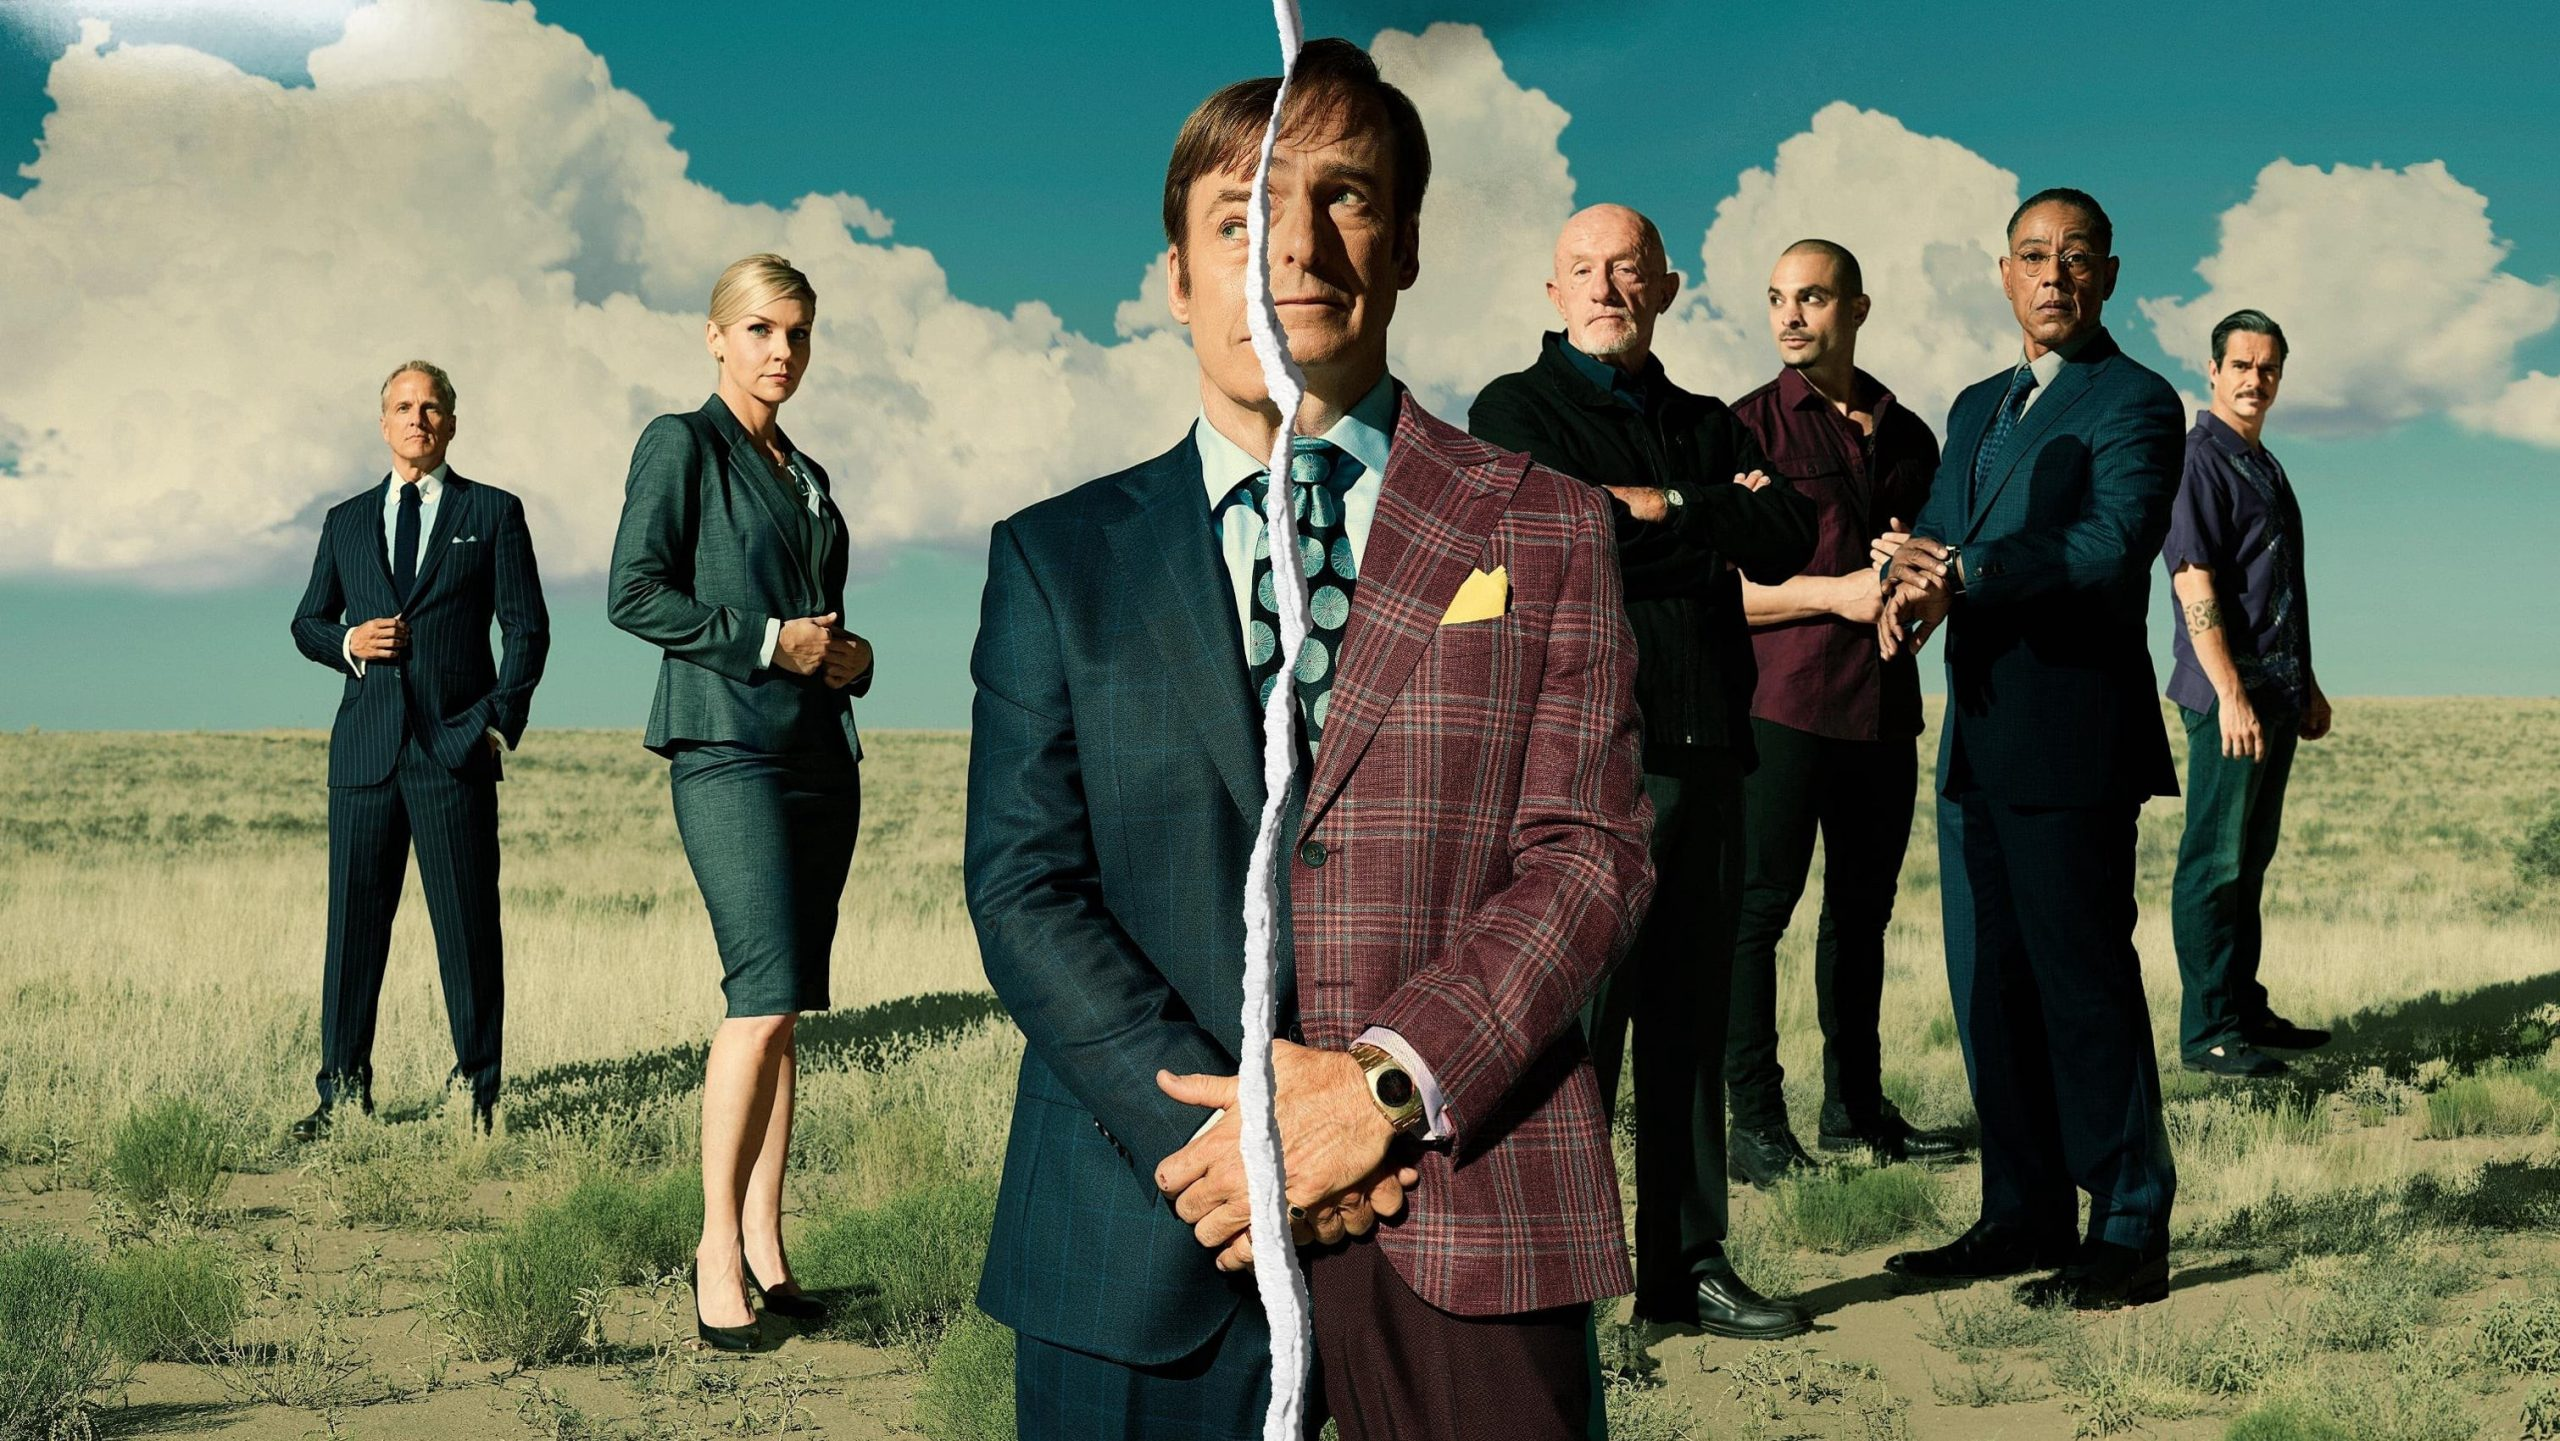 'Better Call Saul' Season 5 Finale